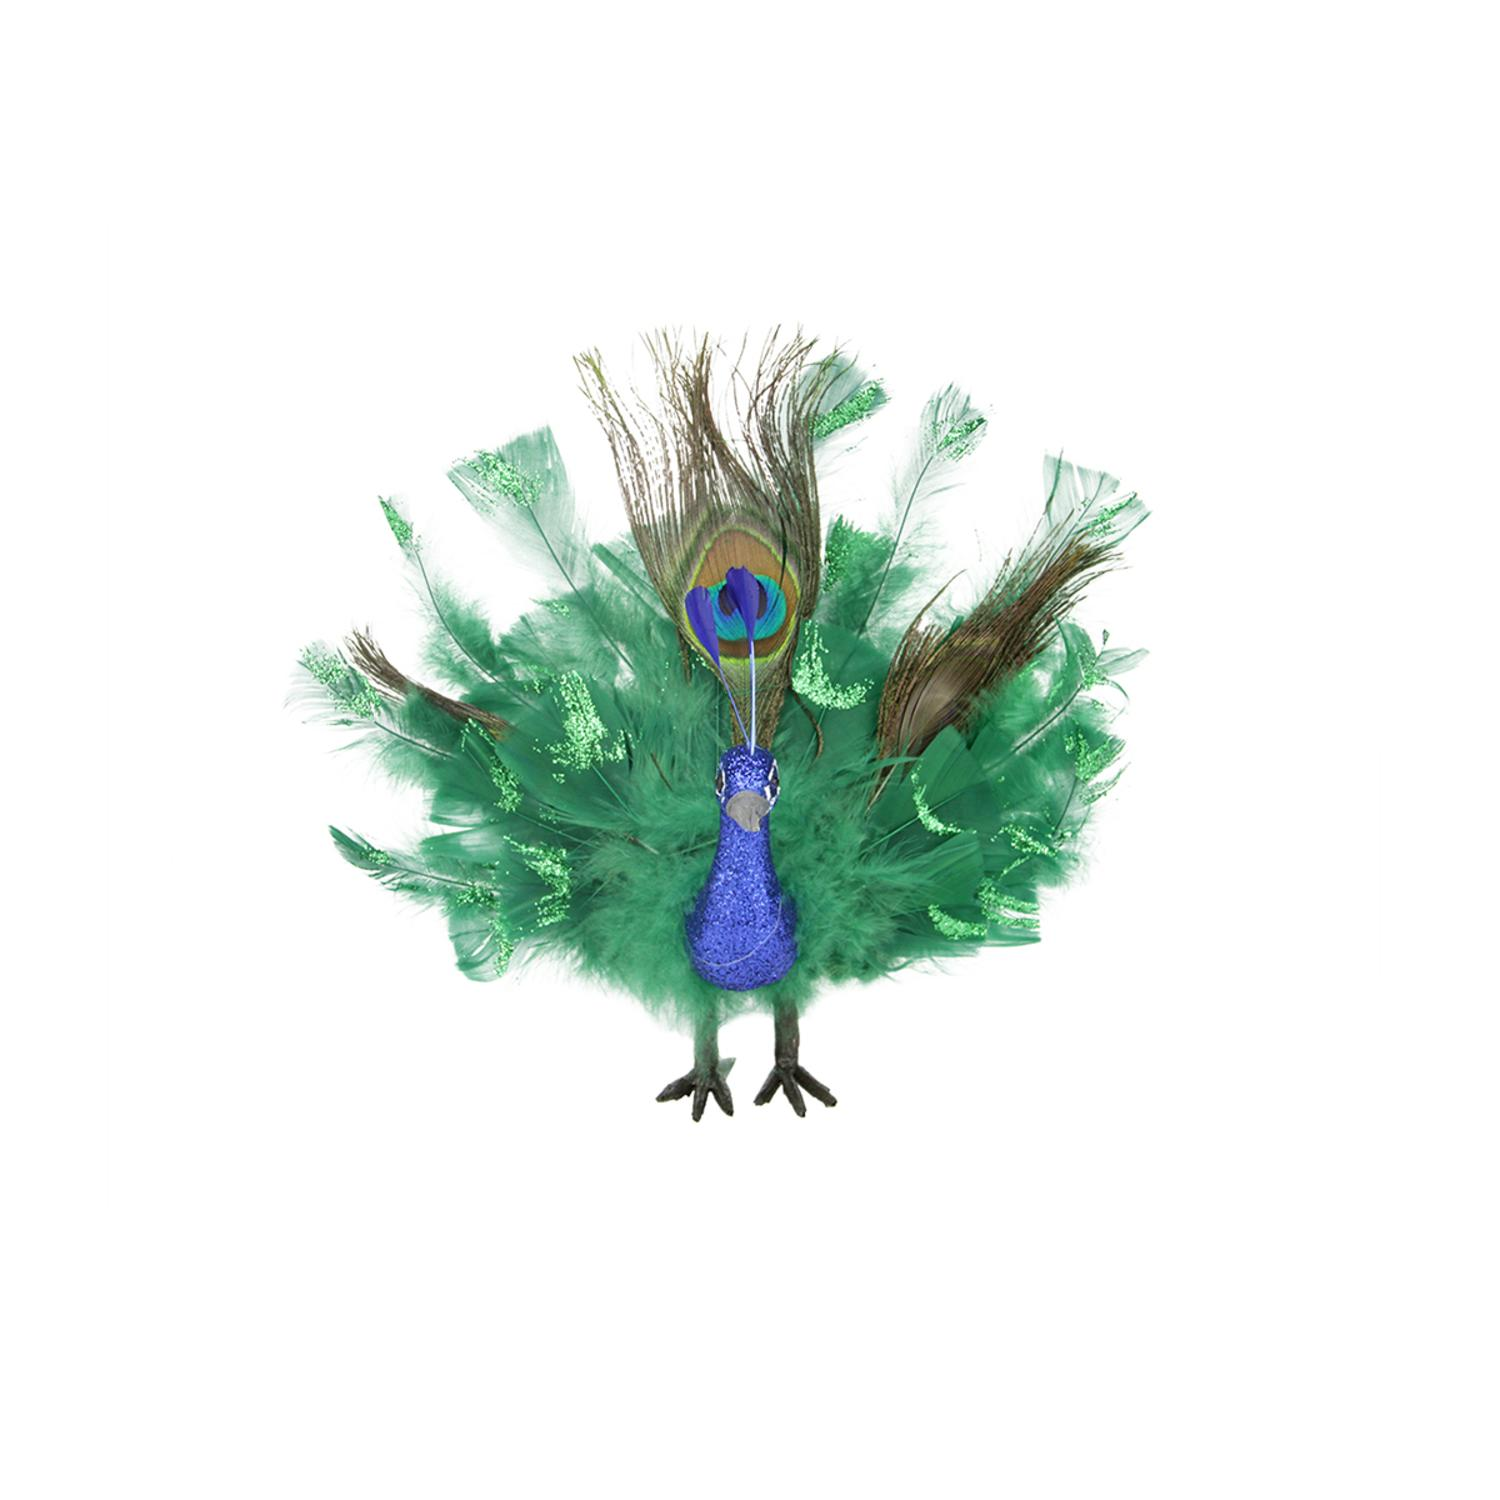 """7"""" Colorful Green Regal Peacock Bird with Open Tail Feathers Christmas Decoration - image 2 of 2"""